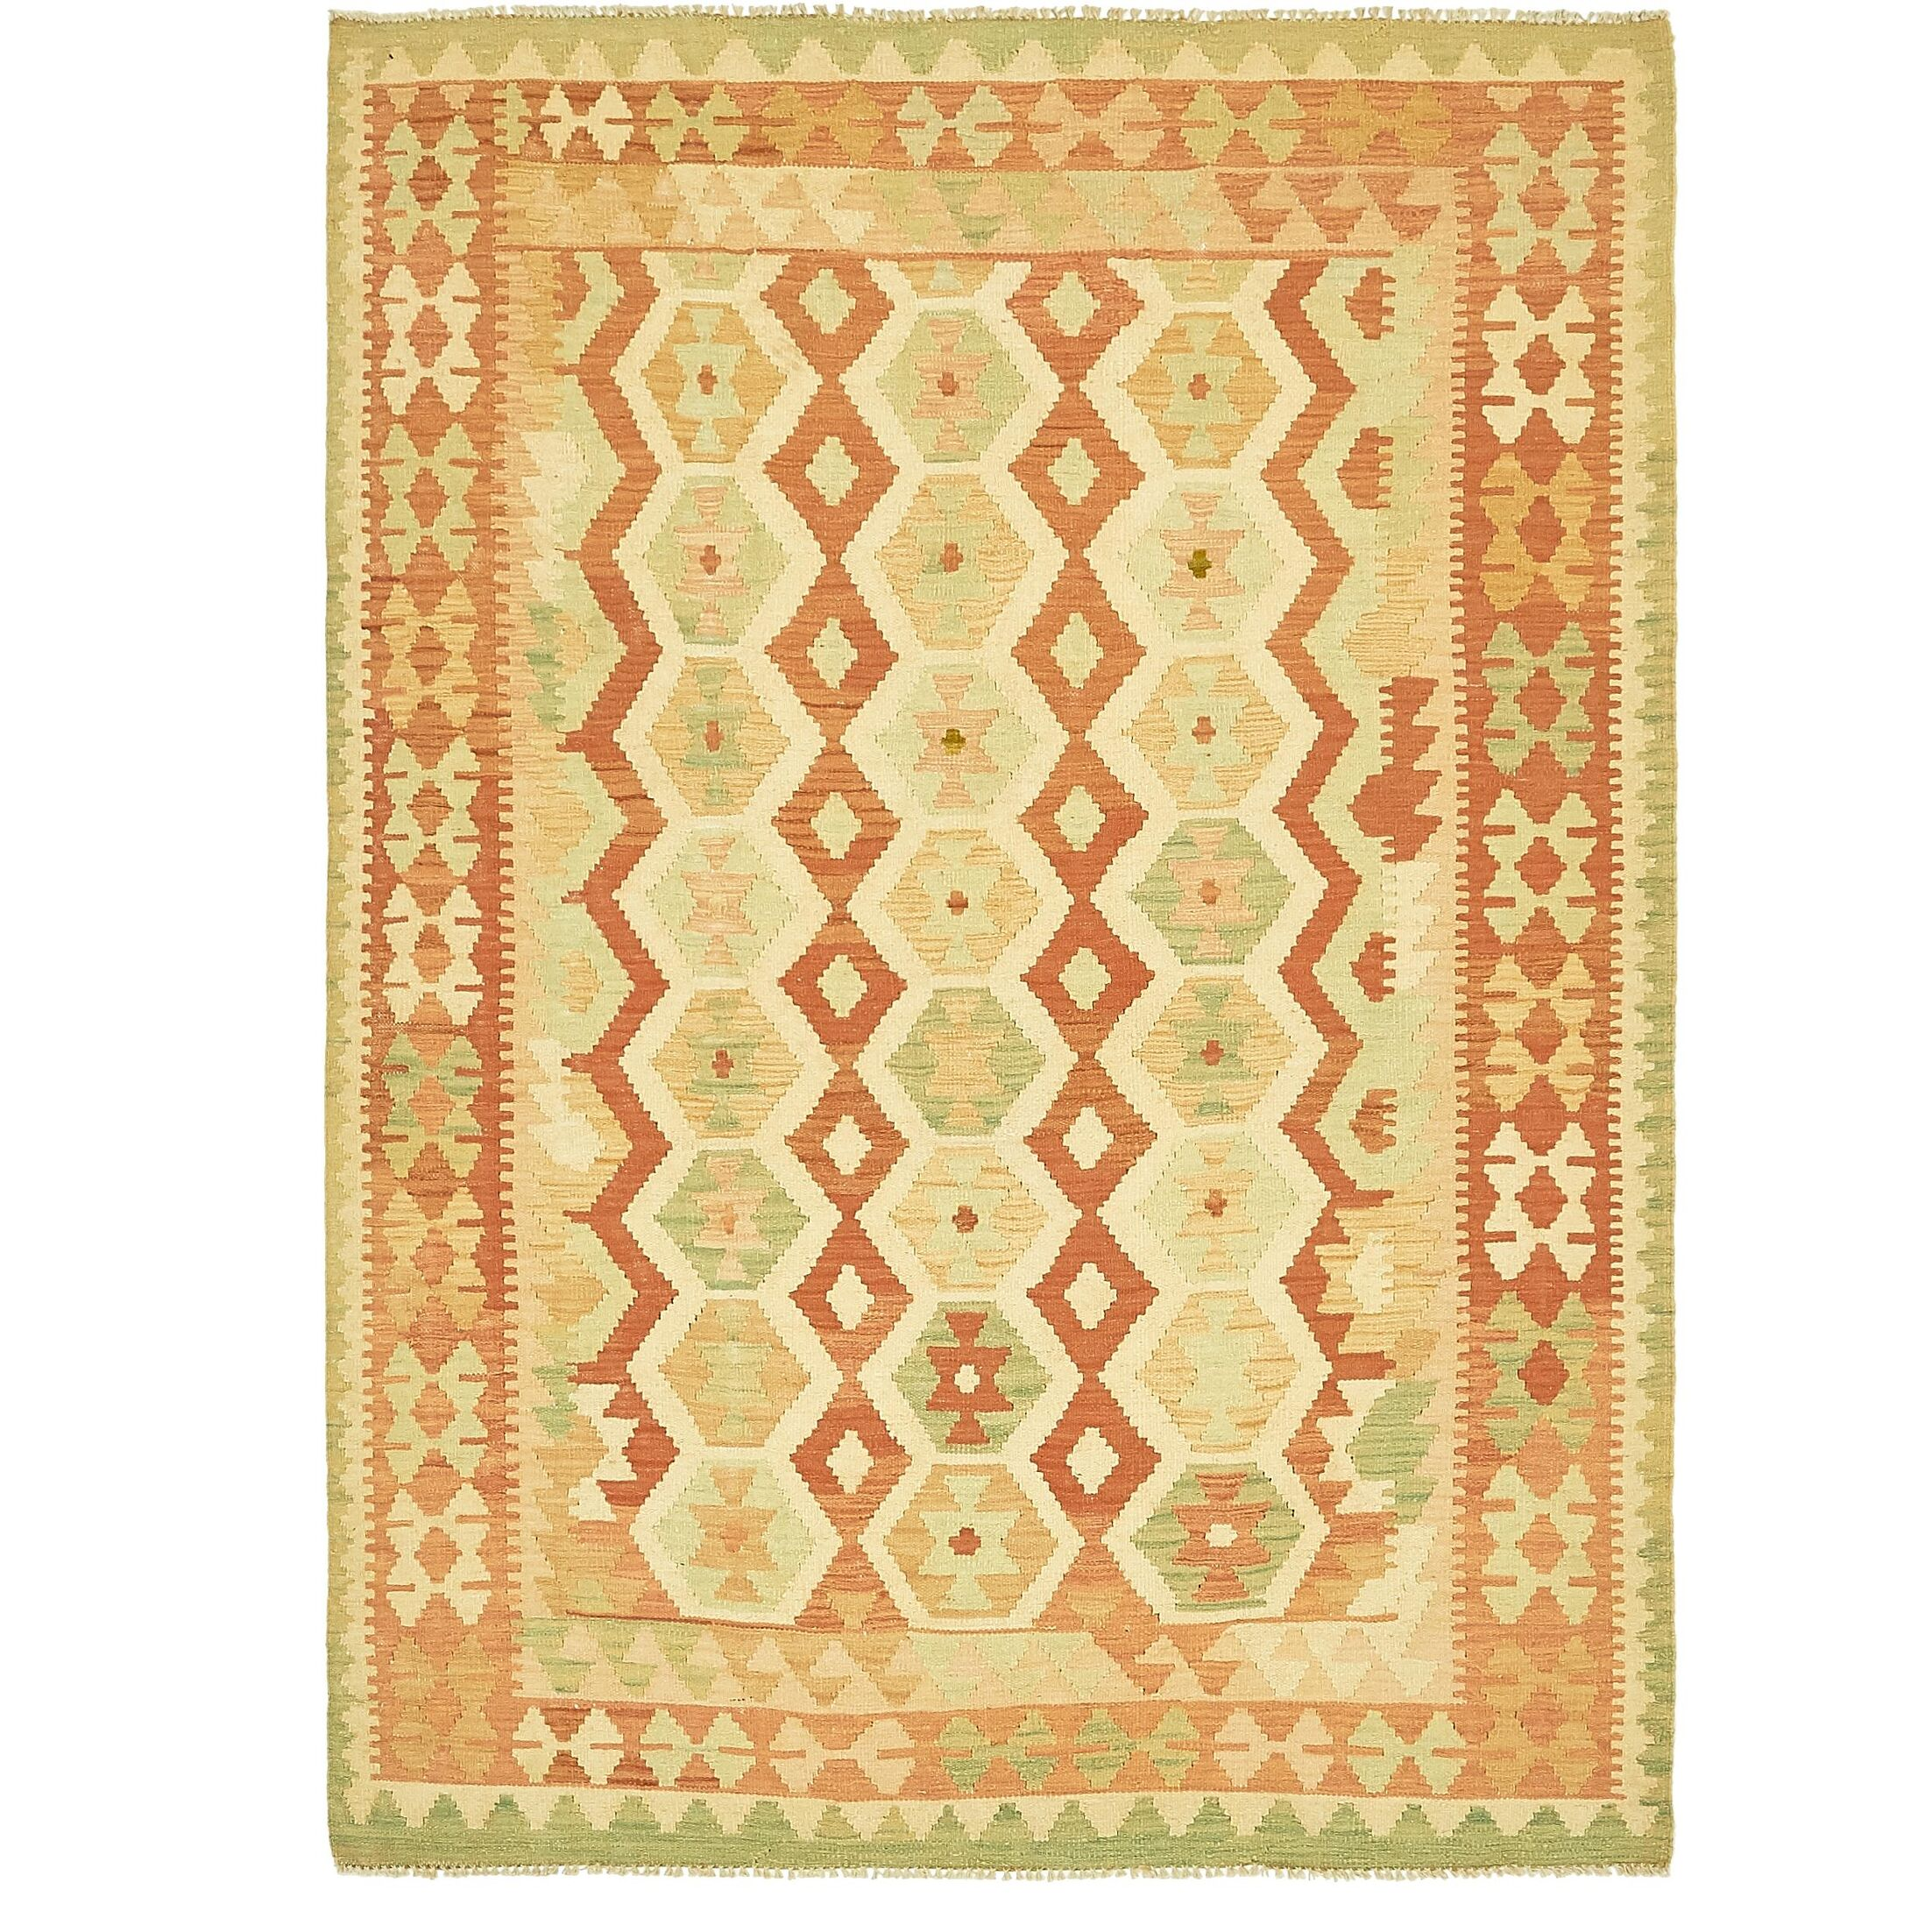 One-of-a-Kind Elland Hand-Knotted Wool Red/Yellow/Green Area Rug